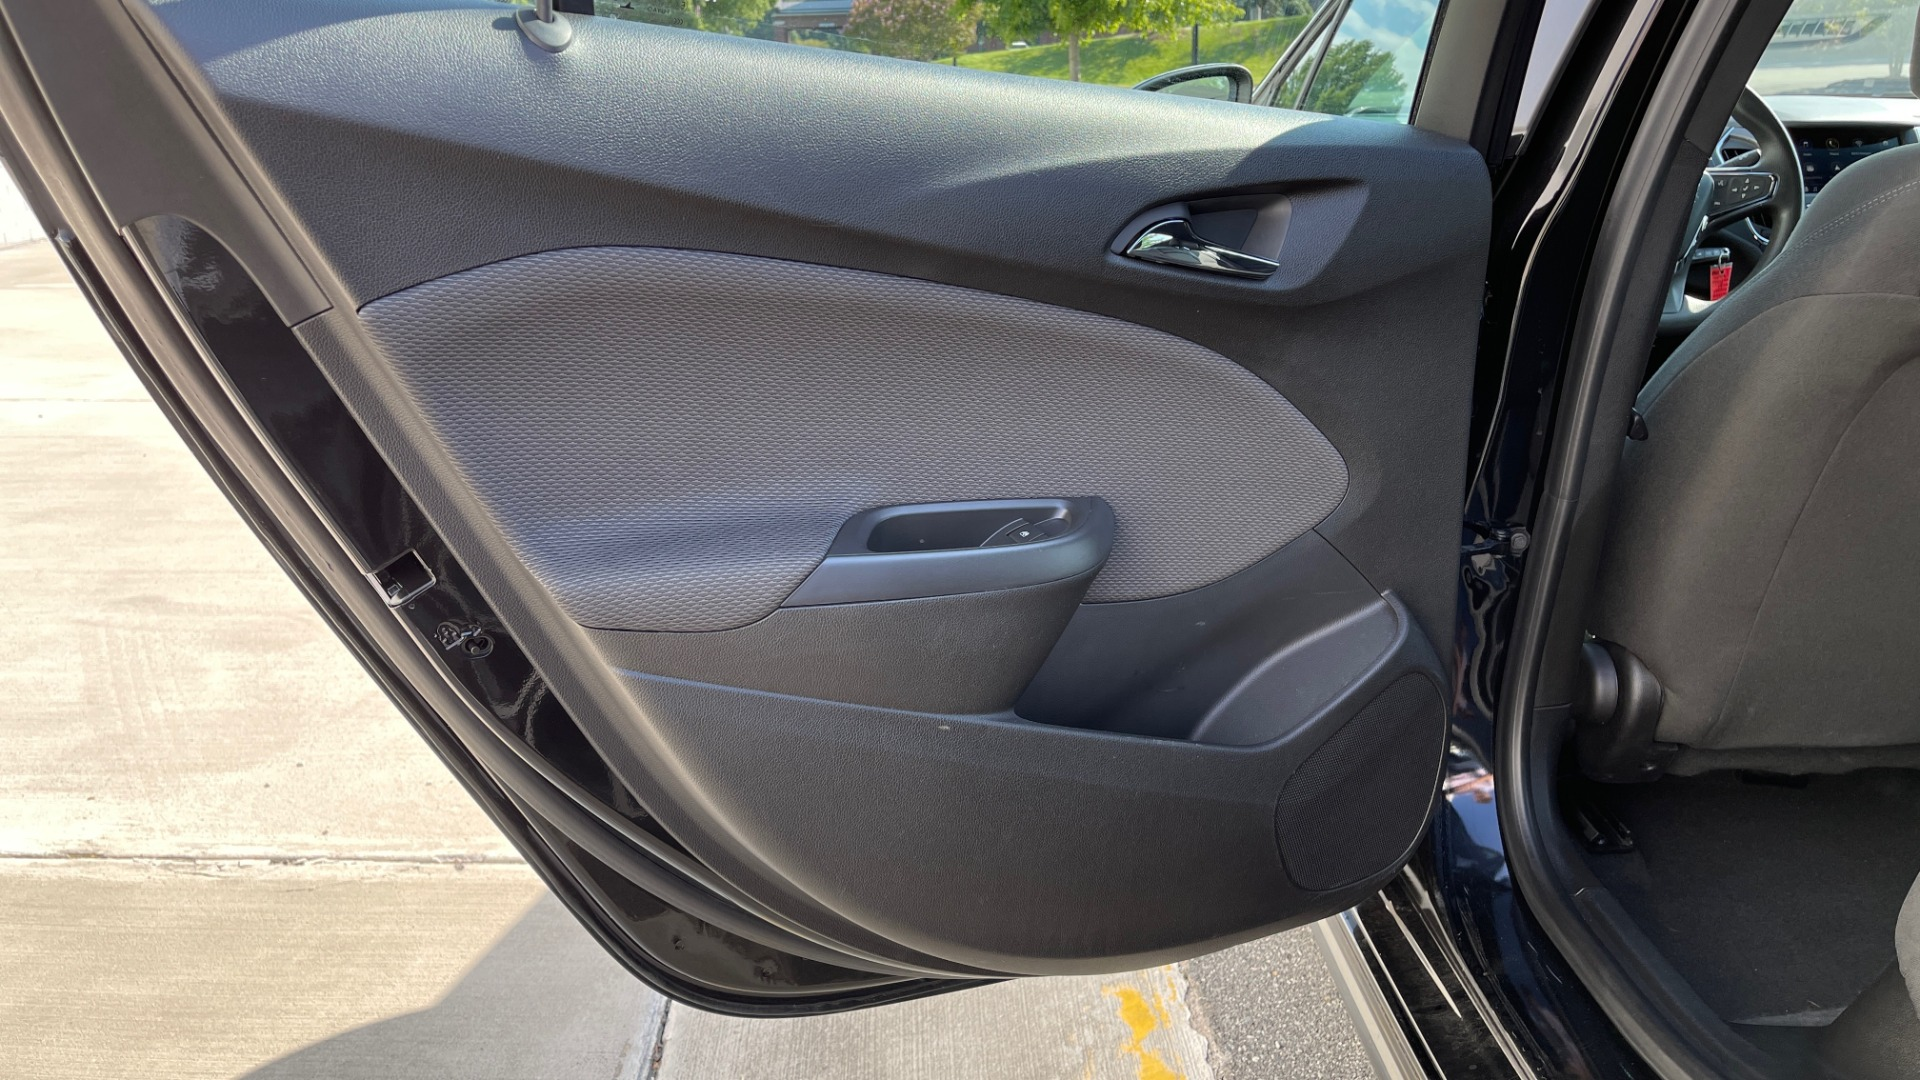 Used 2019 Chevrolet CRUZE LT / 1.4L TURBO / 6-SPD AUTO / AIR CONDITIONING / REARVIEW for sale $18,495 at Formula Imports in Charlotte NC 28227 36